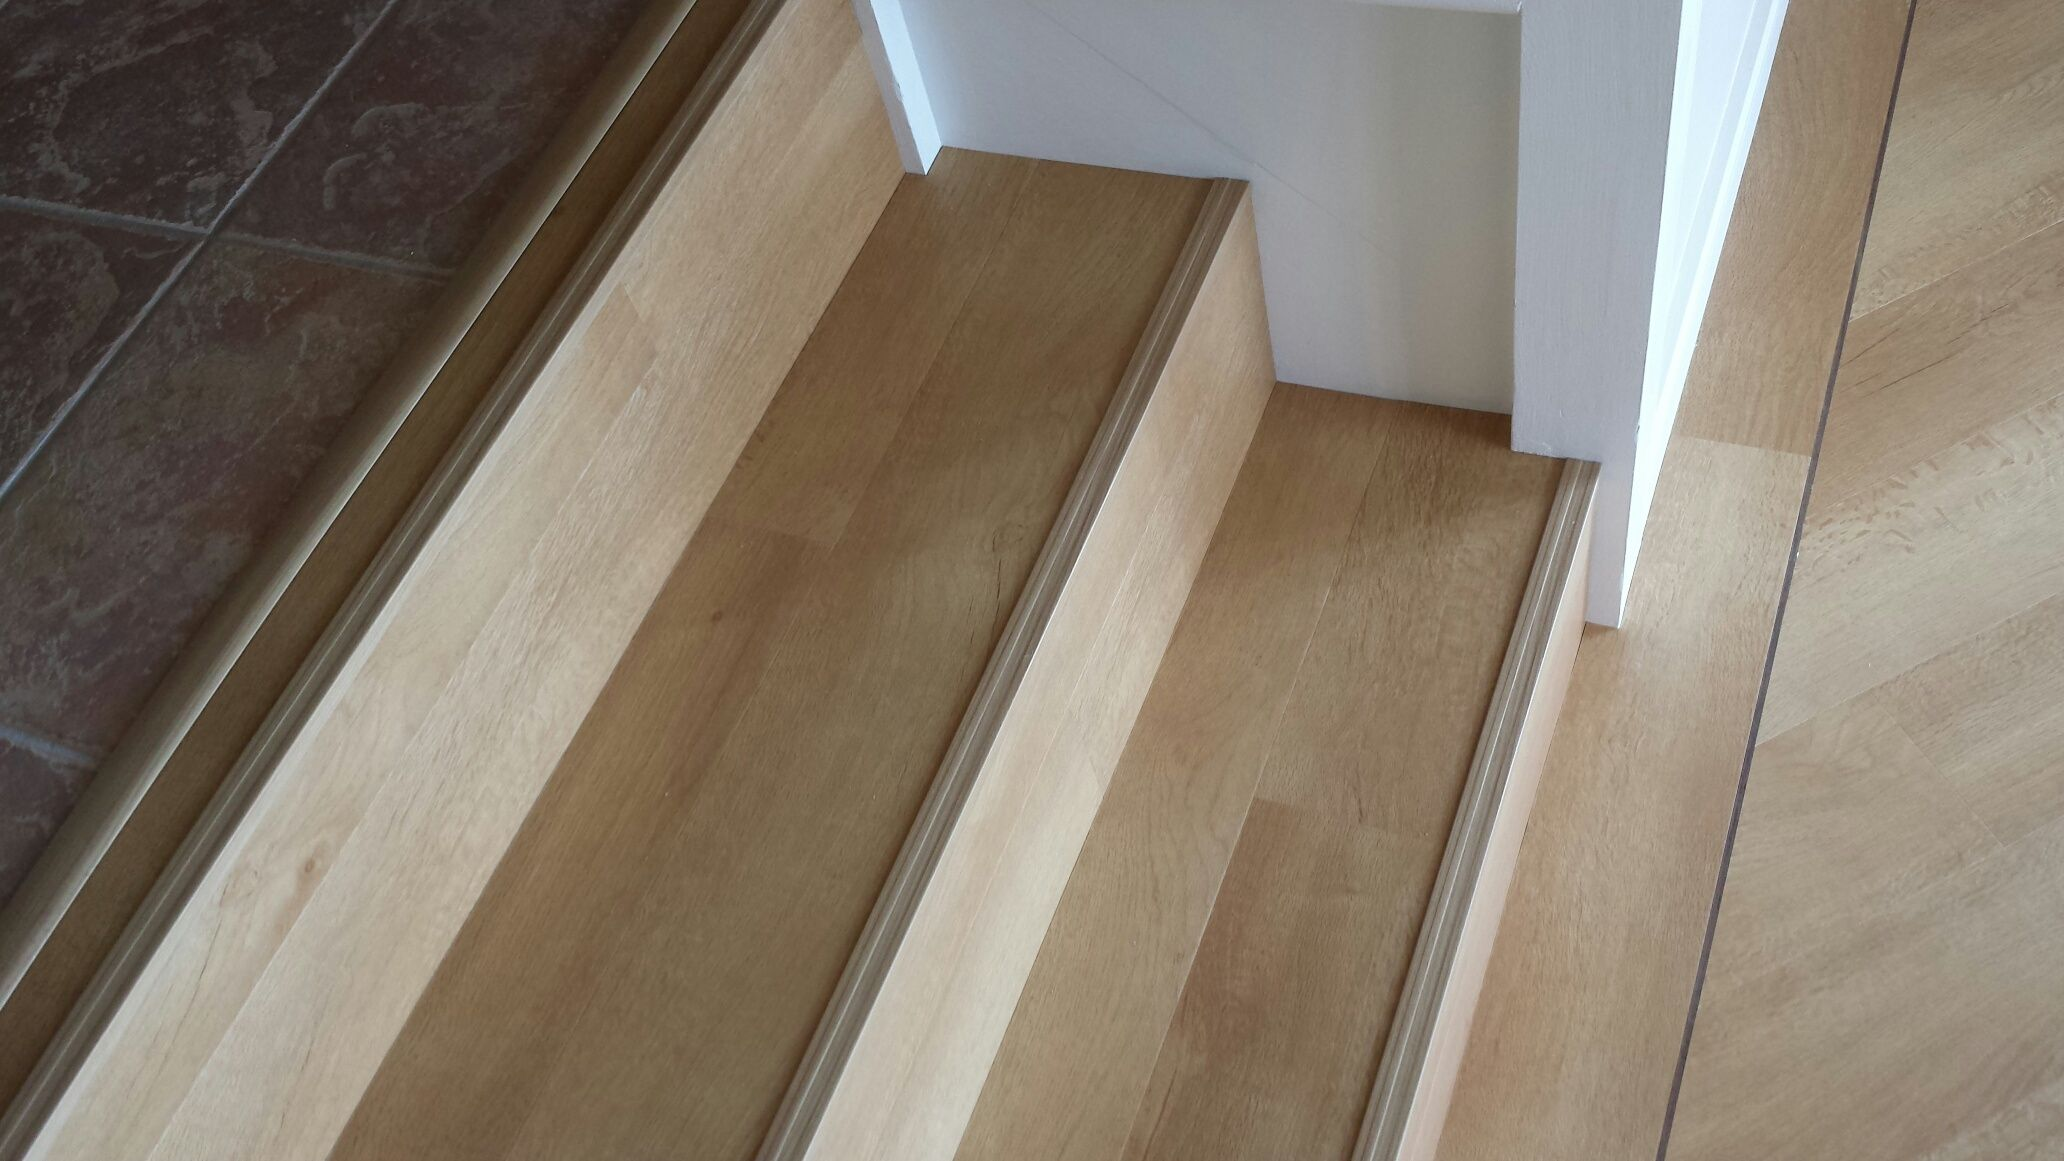 way team to l best mop on awesome hardwood stairs mopping flooring wood floors bleach with laminate highest unbelievable